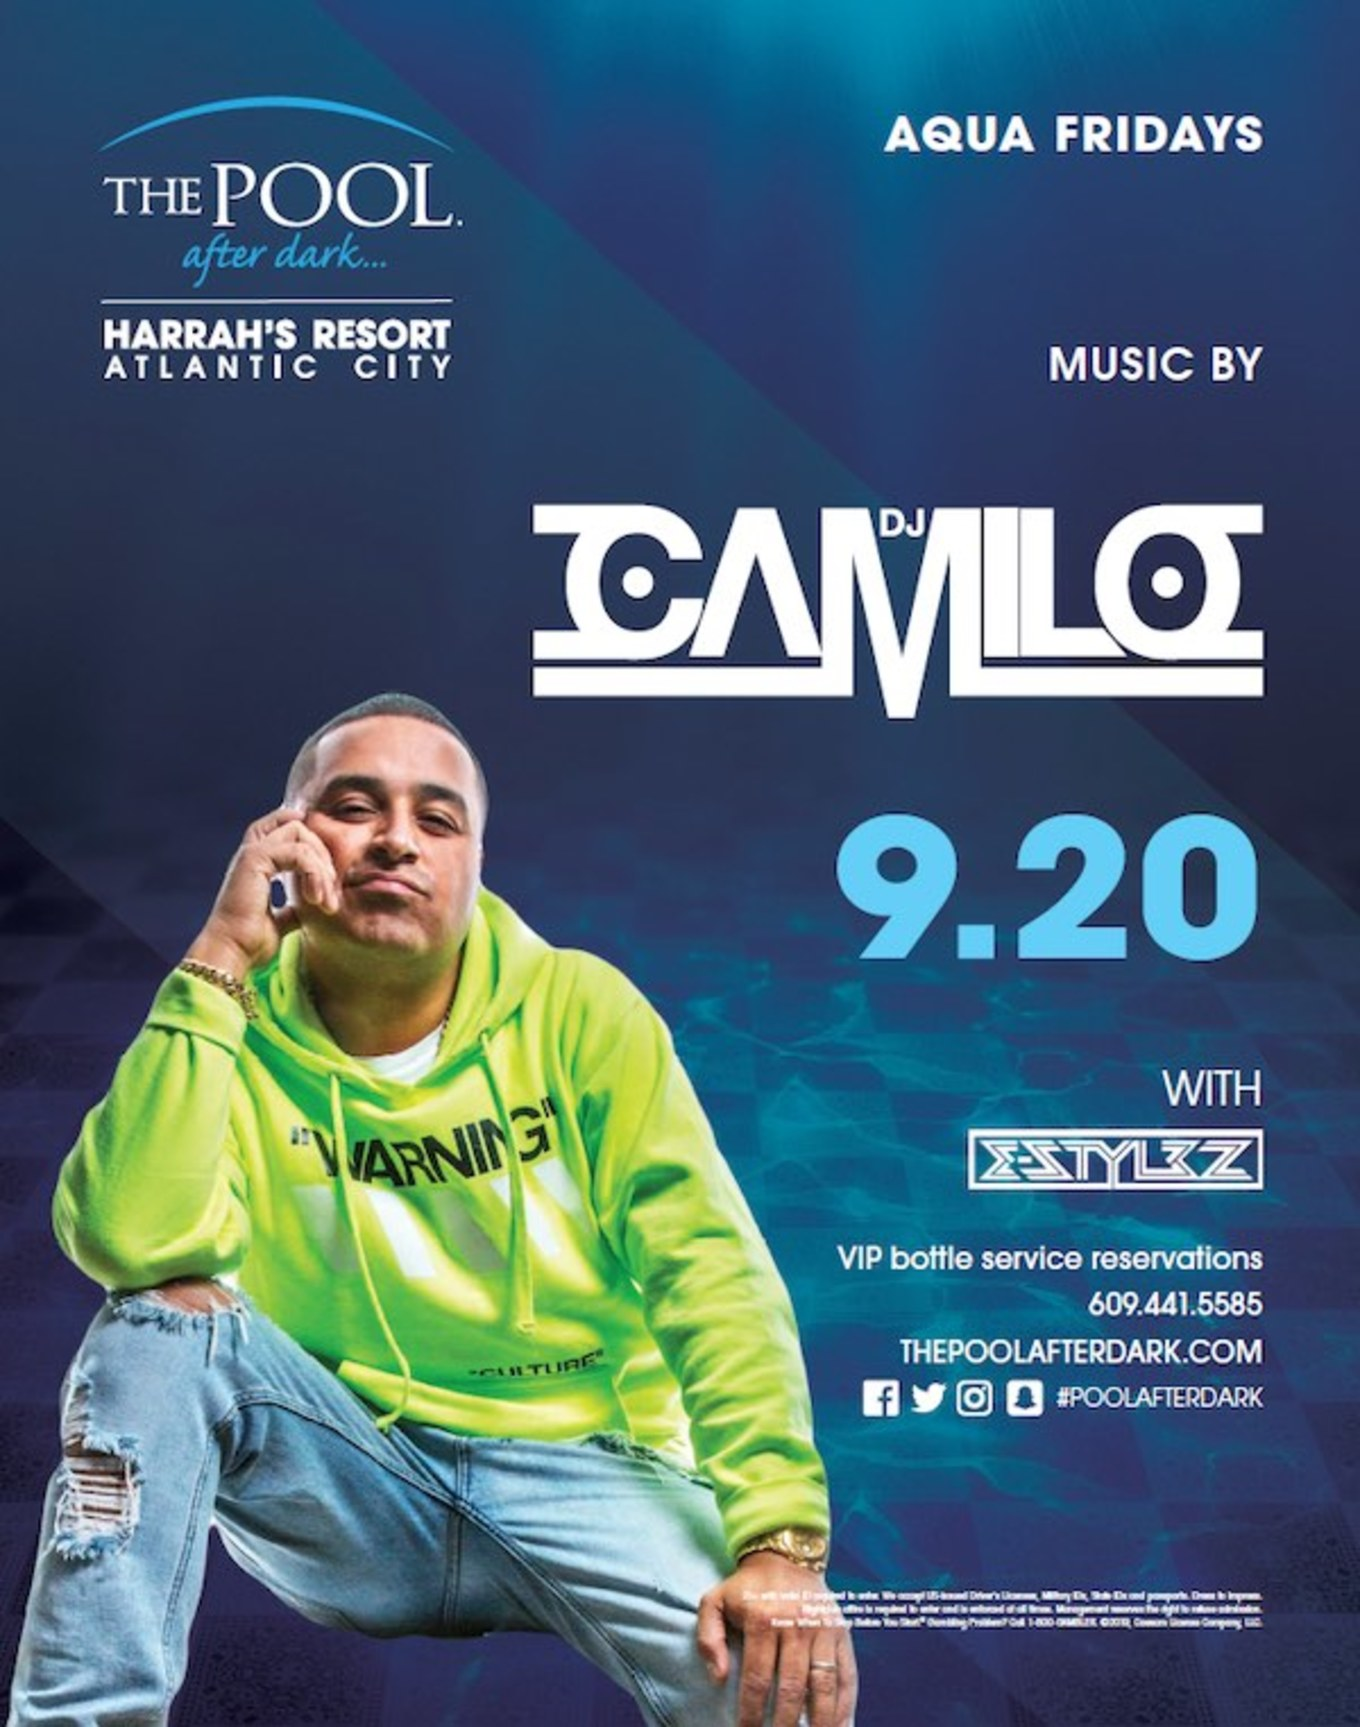 Aqua Fridays featuring DJ Camilo - Tickets - The Pool After